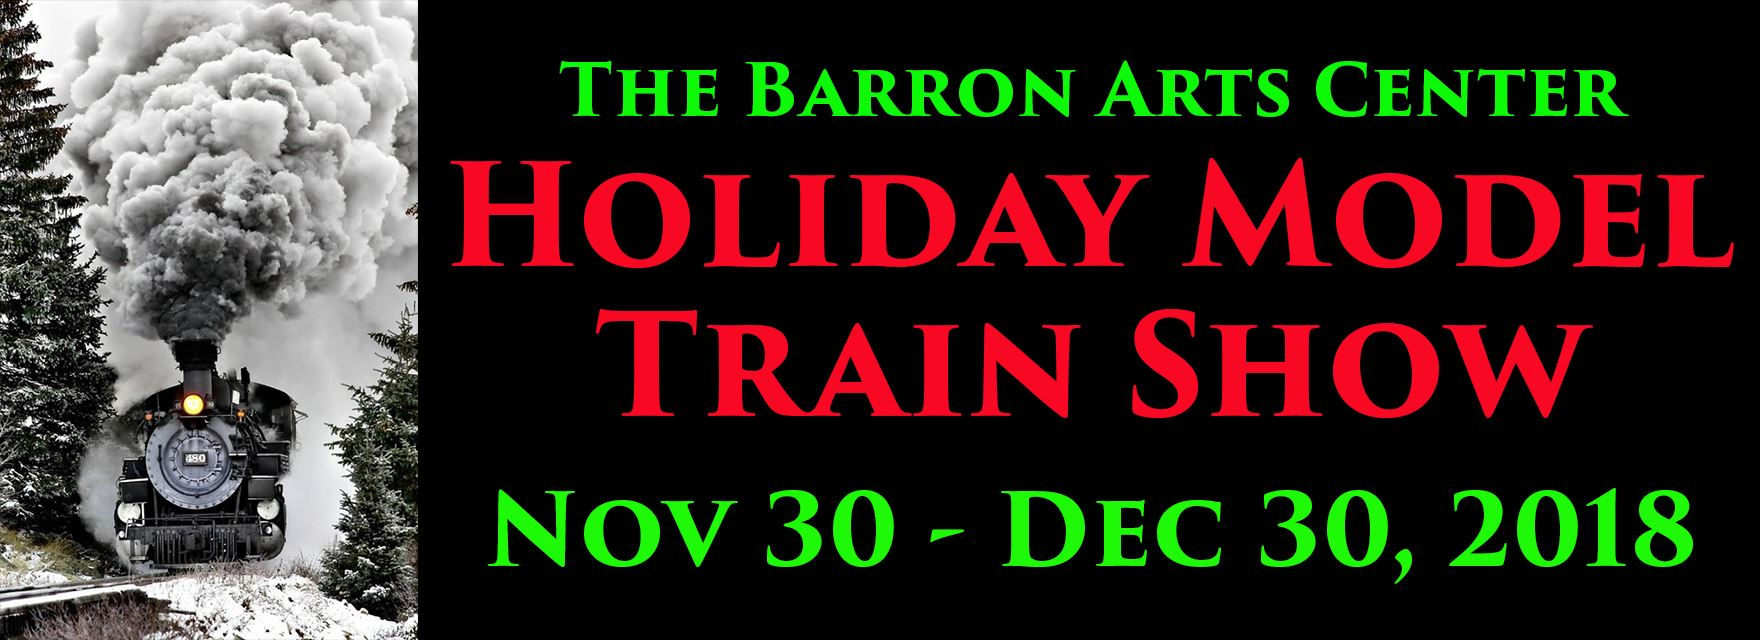 Holiday Model Train Show 2018